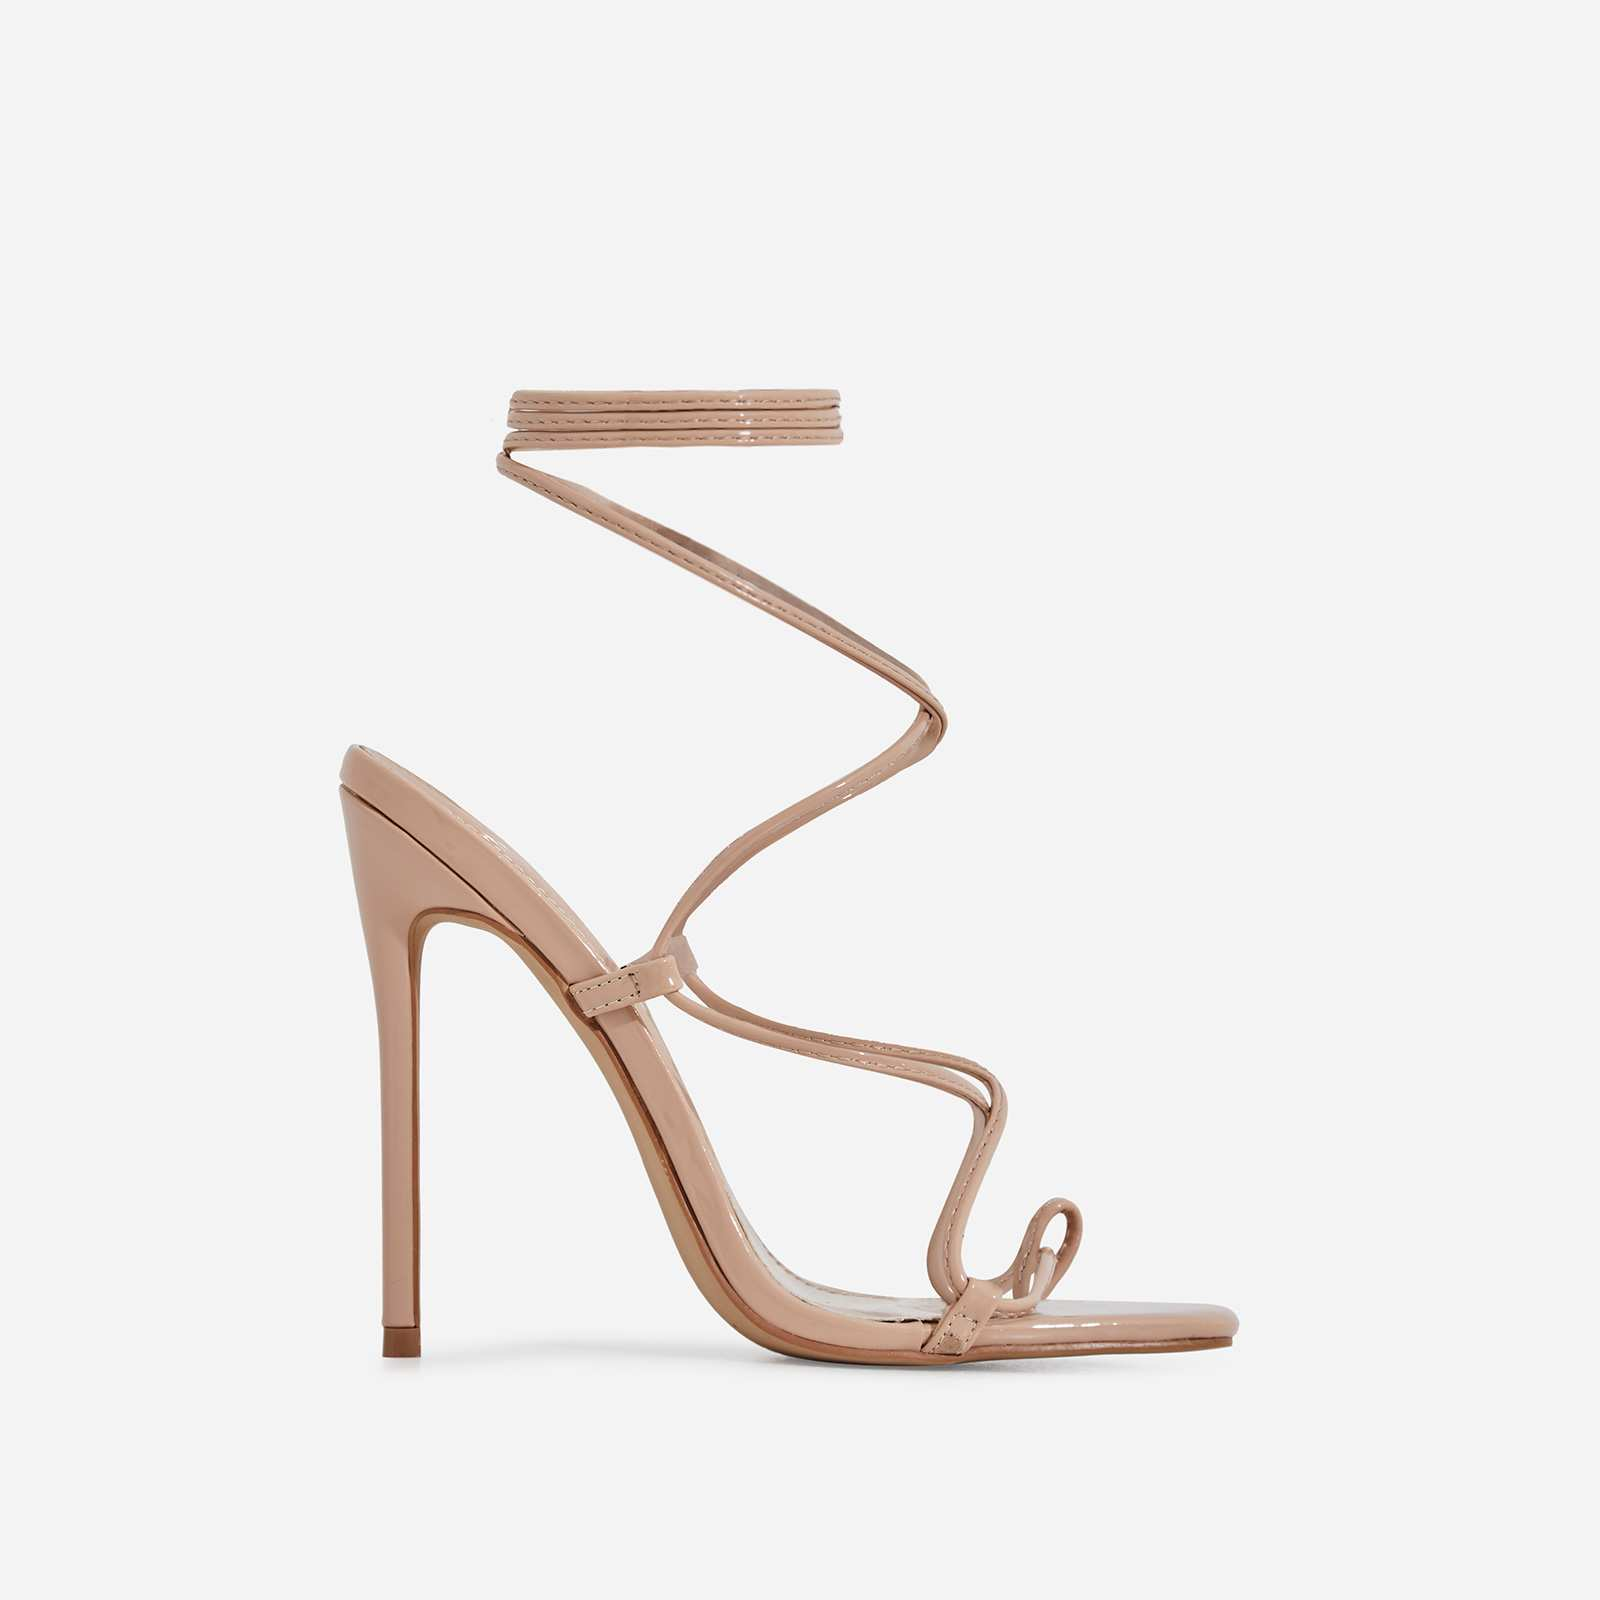 Paris Square Toe Lace Up Heel In Nude Patent